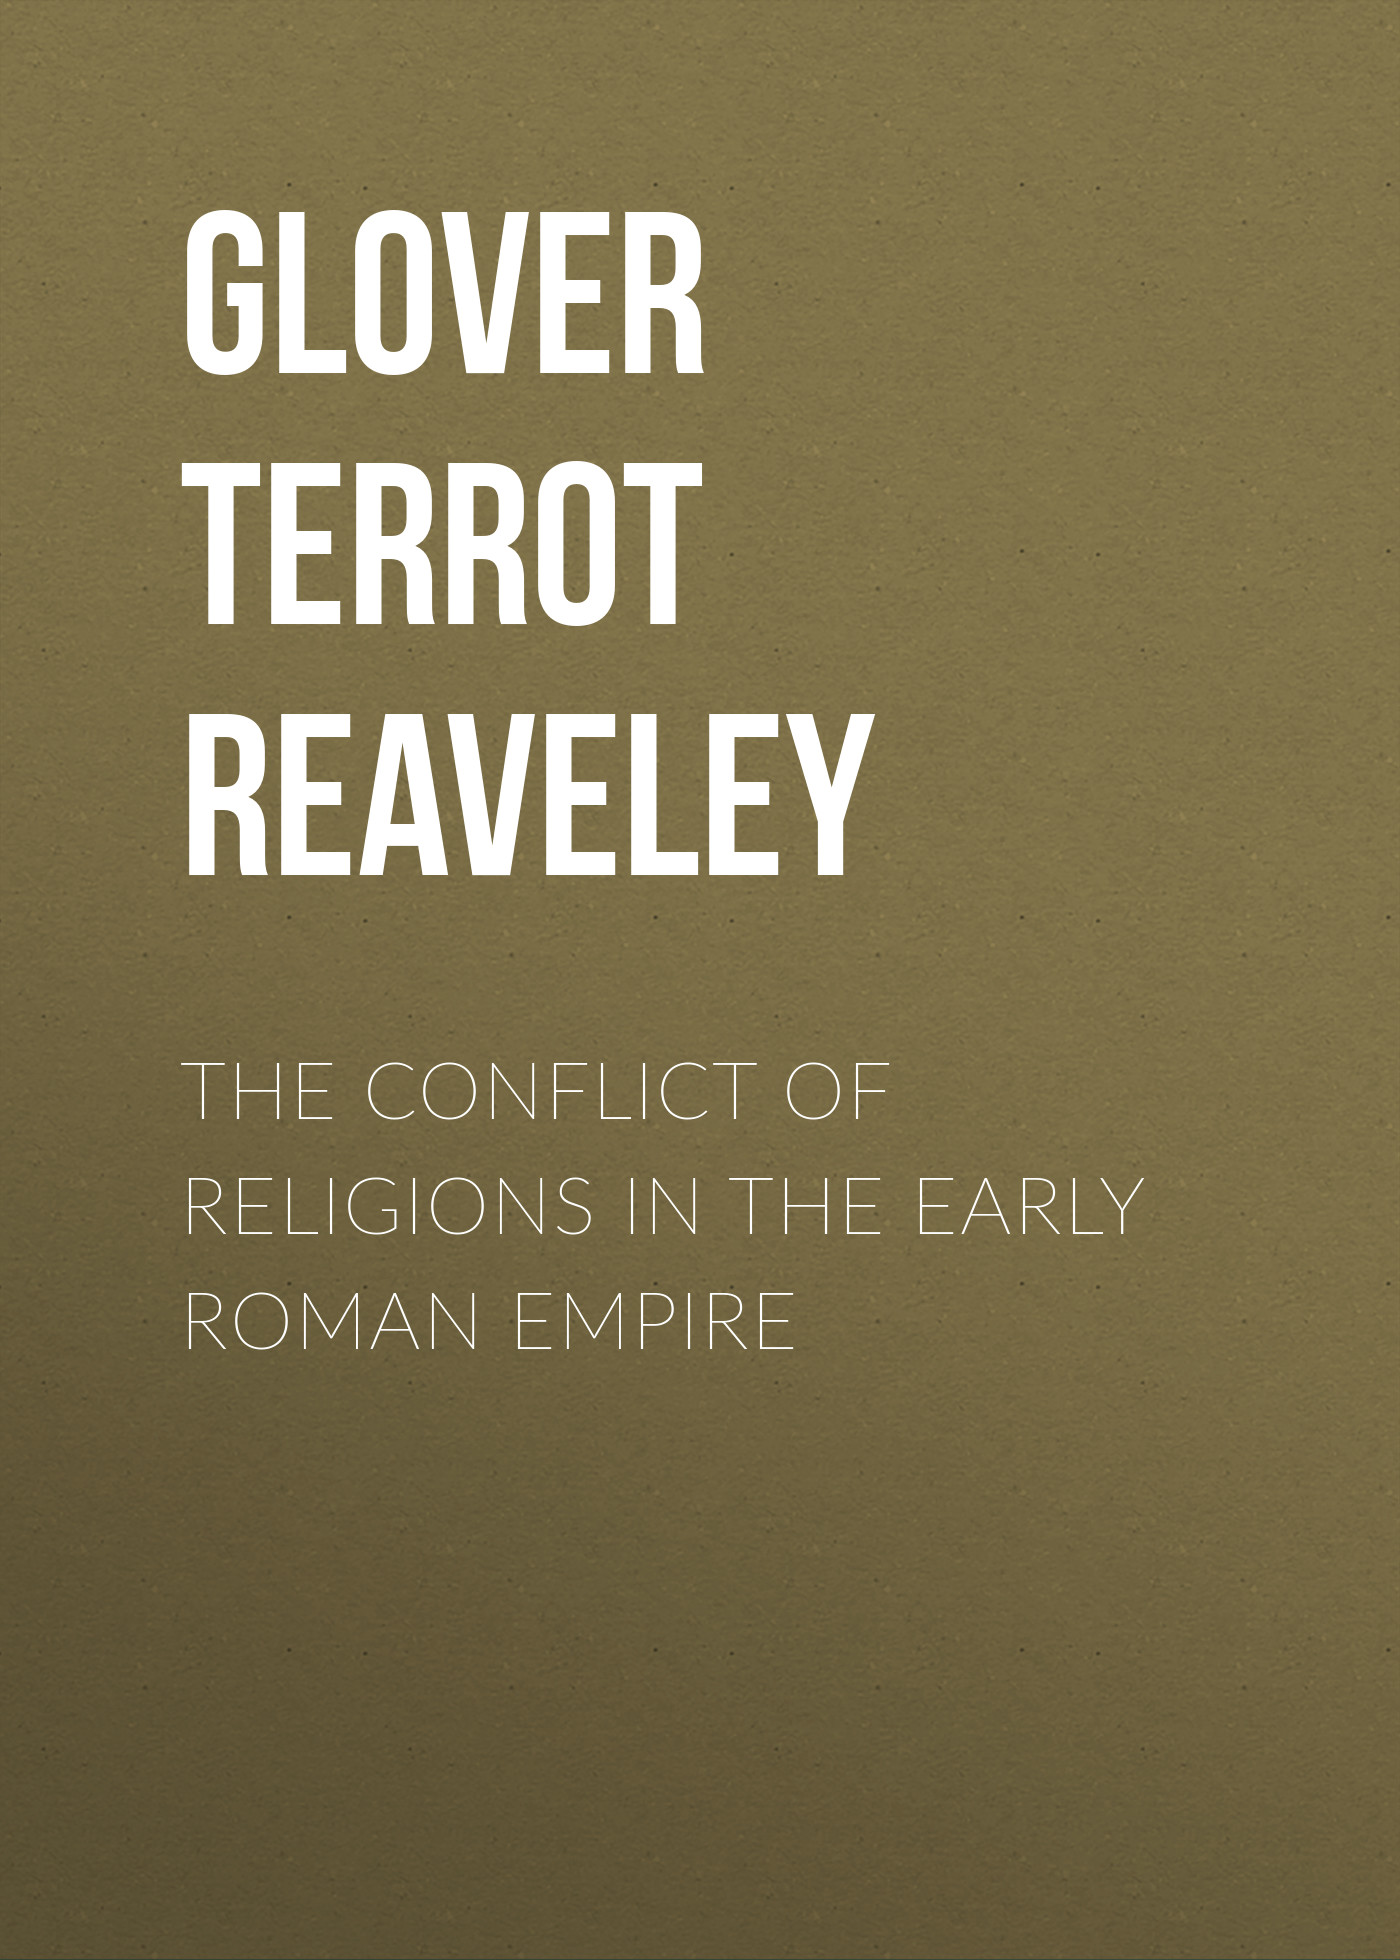 цена на Glover Terrot Reaveley The Conflict of Religions in the Early Roman Empire